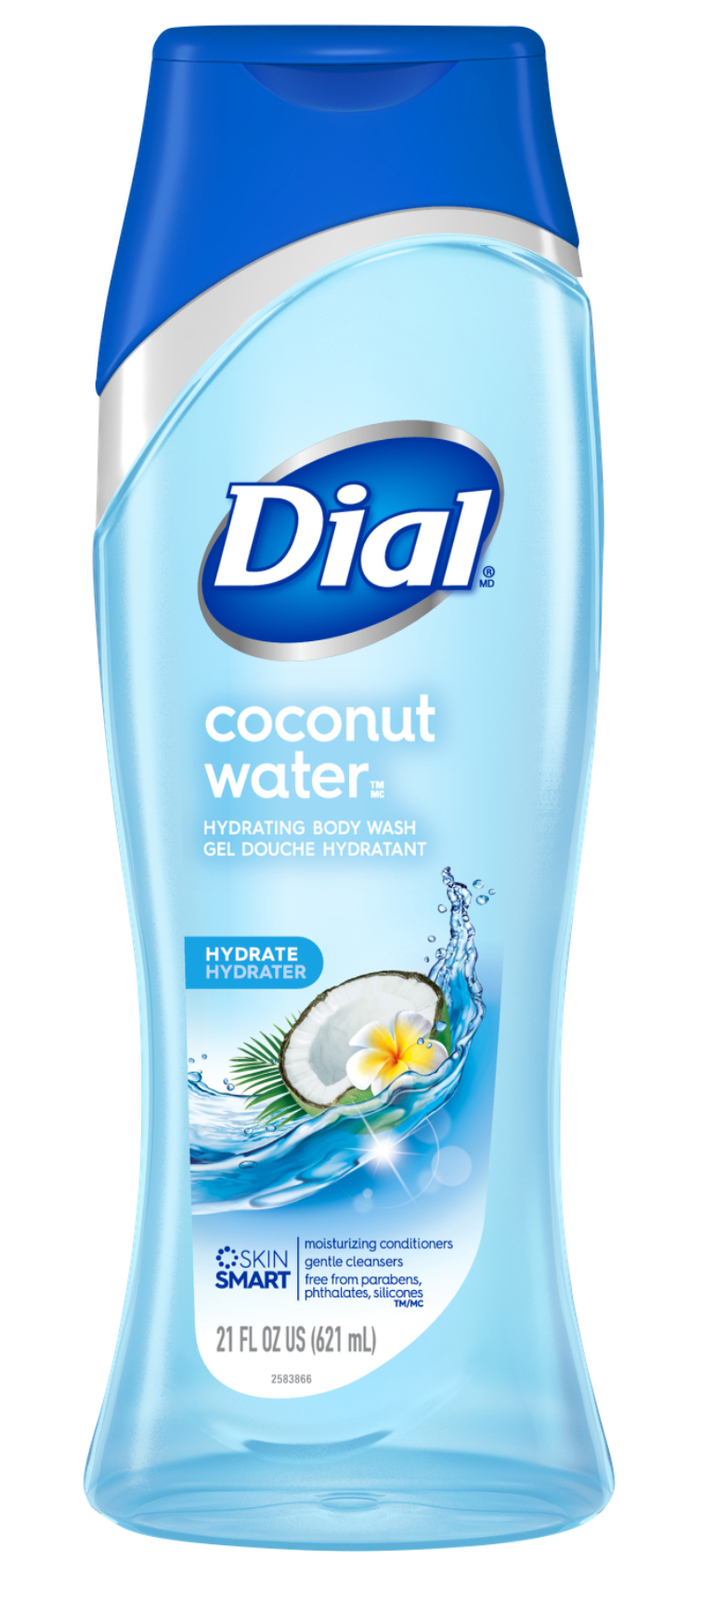 Primary image for Dial Hydrating Body Wash, Coconut Water, 21 Fluid Ounces